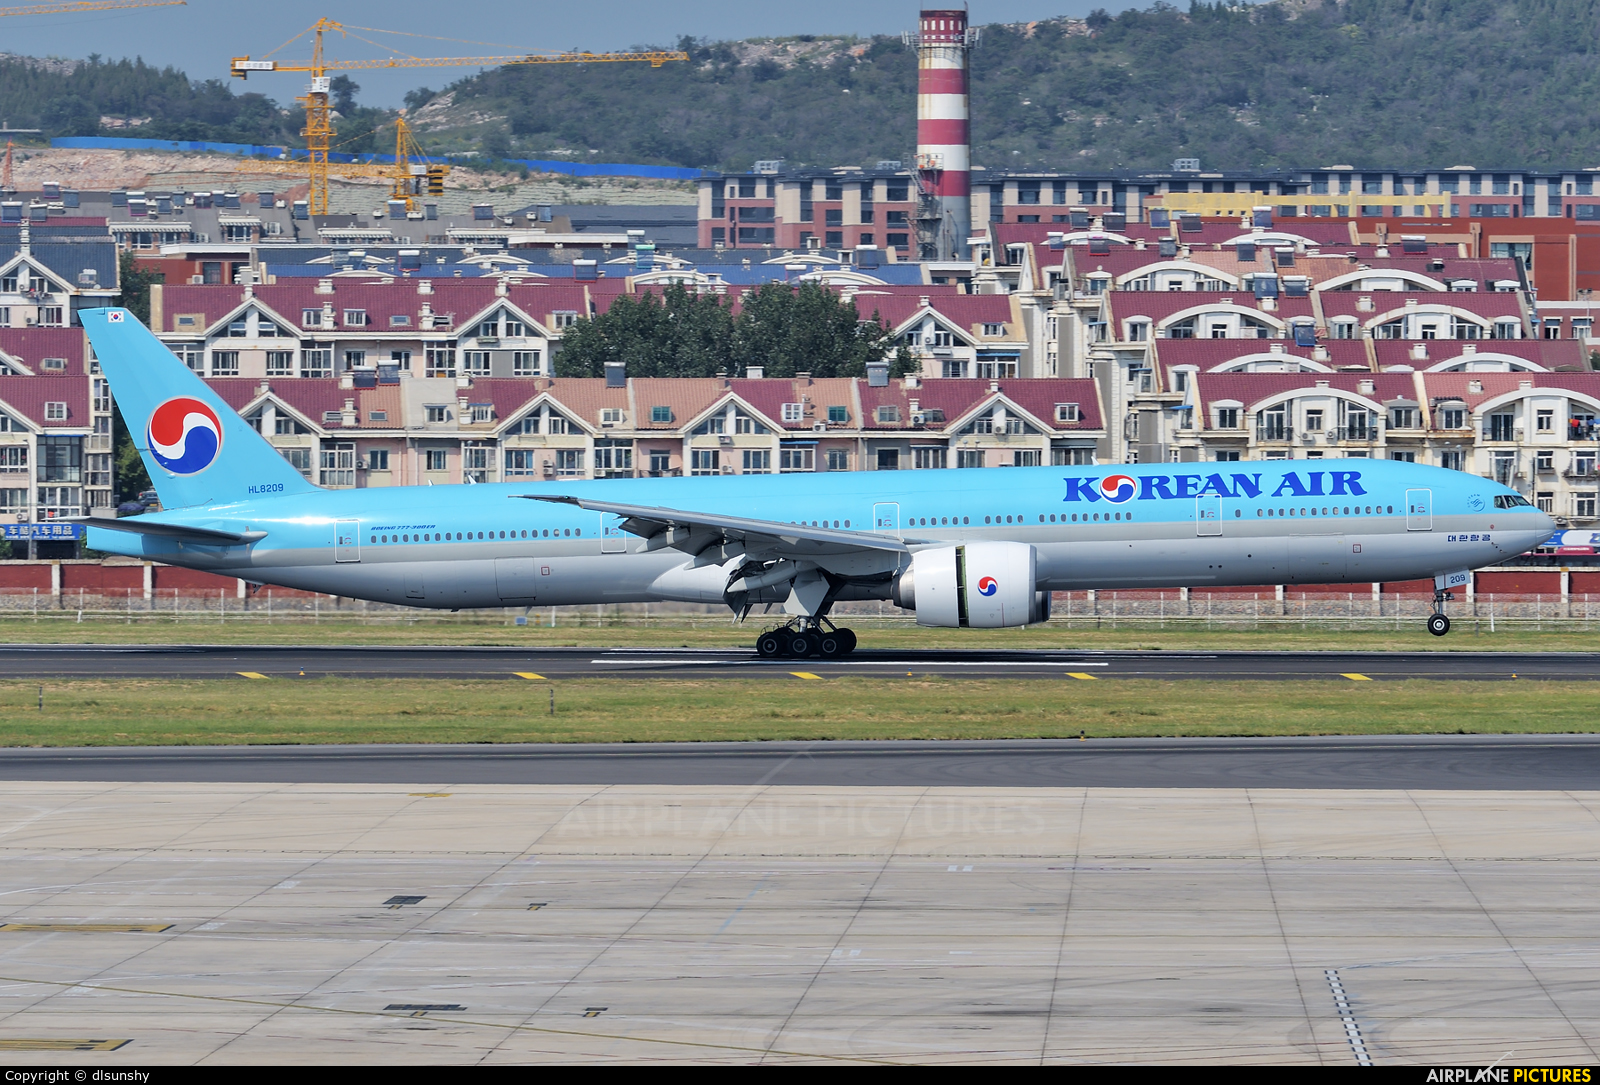 Korean Air HL8209 aircraft at Dalian Zhoushuizi Int'l